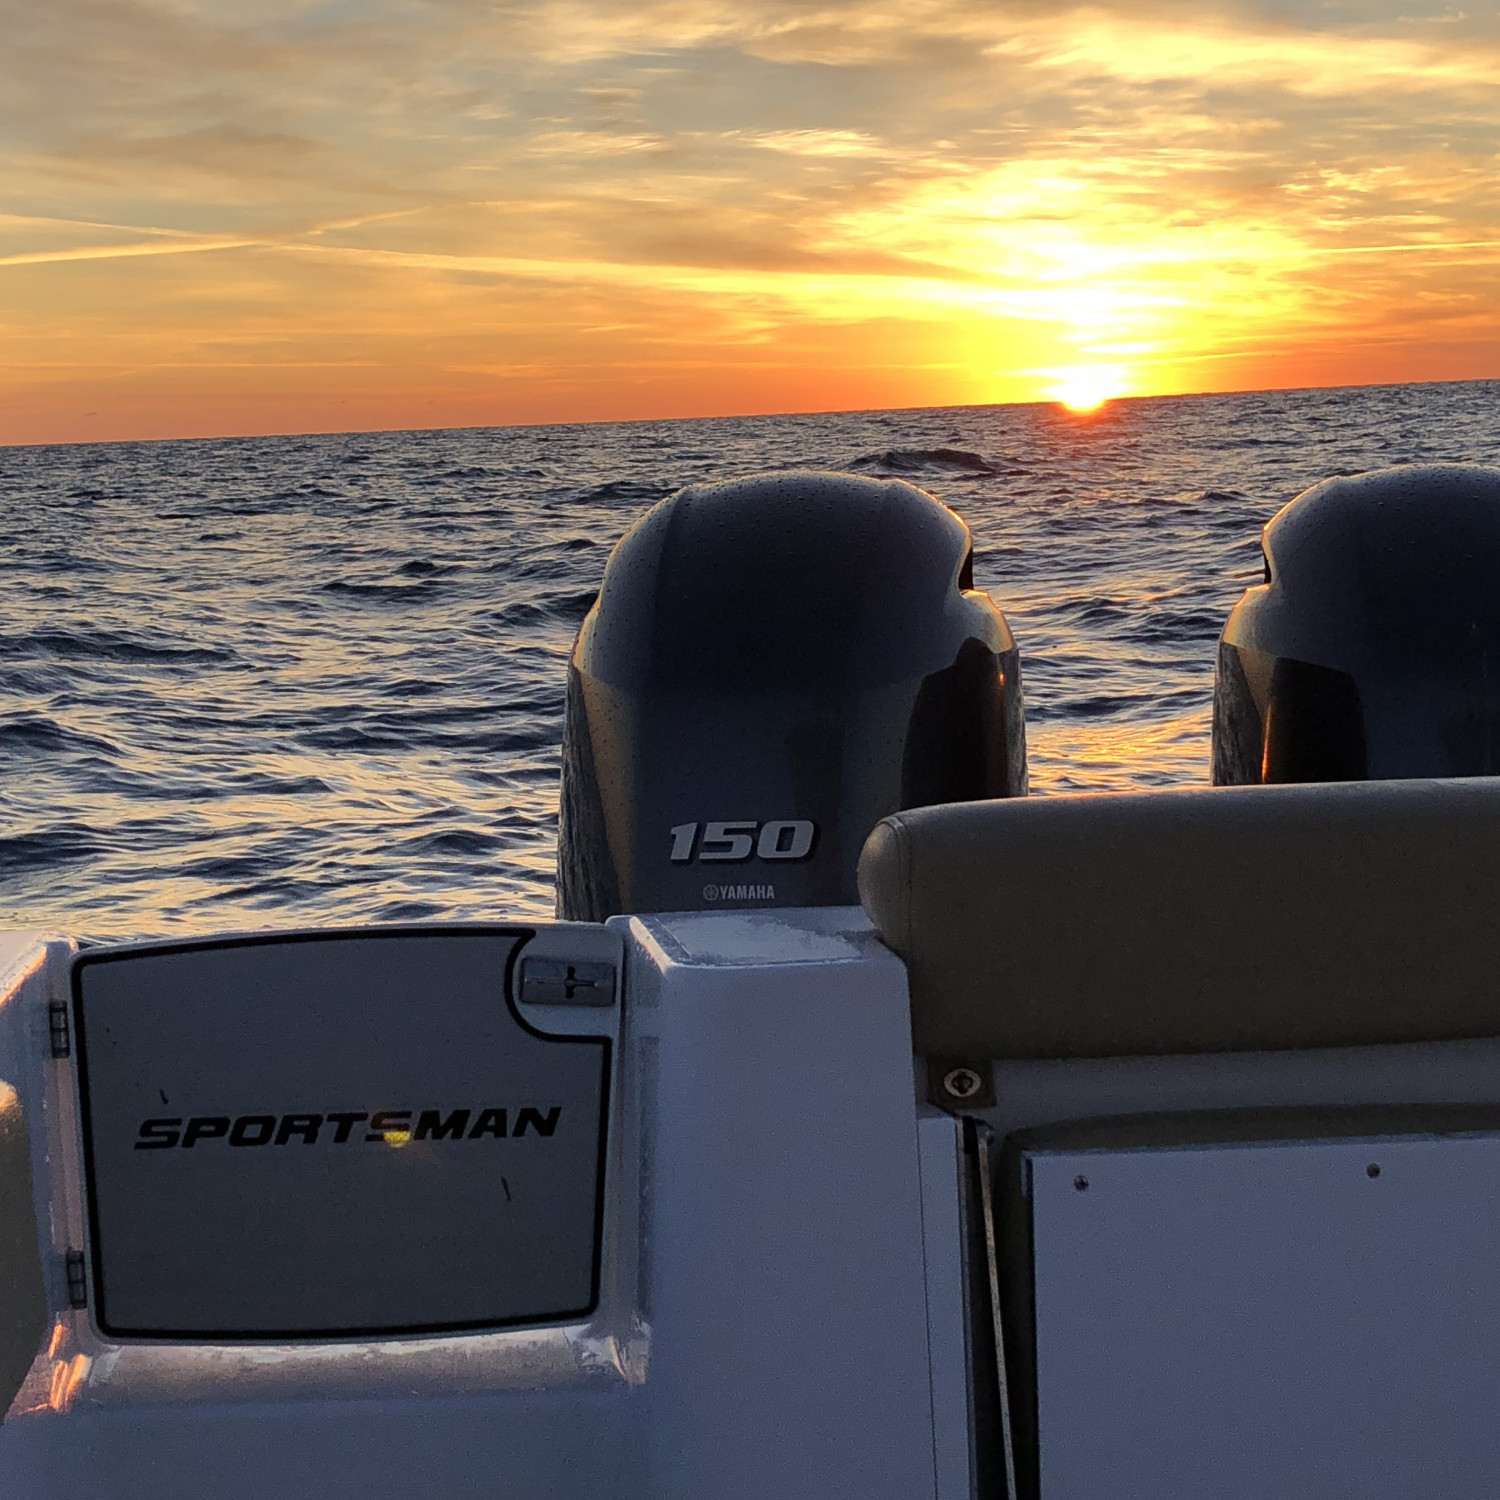 Title: Sunrise Offshore - On board their Sportsman Open 252 Center Console - Location: Jacksonville Florida 40 miles offshore. Participating in the Photo Contest #SportsmanApril2018